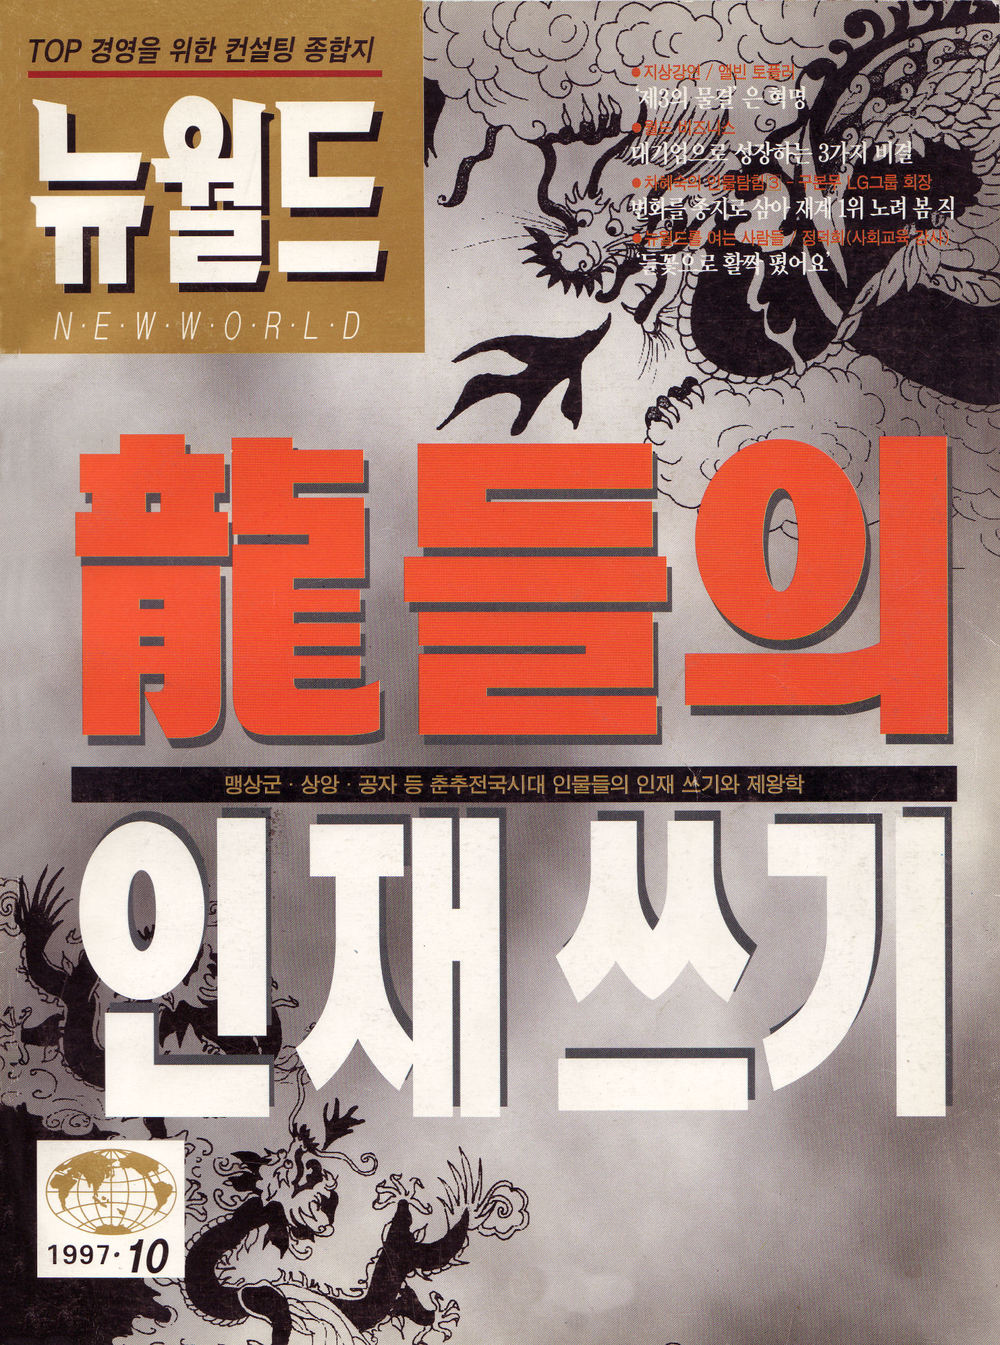 1997-10 NewWorld cover.jpg